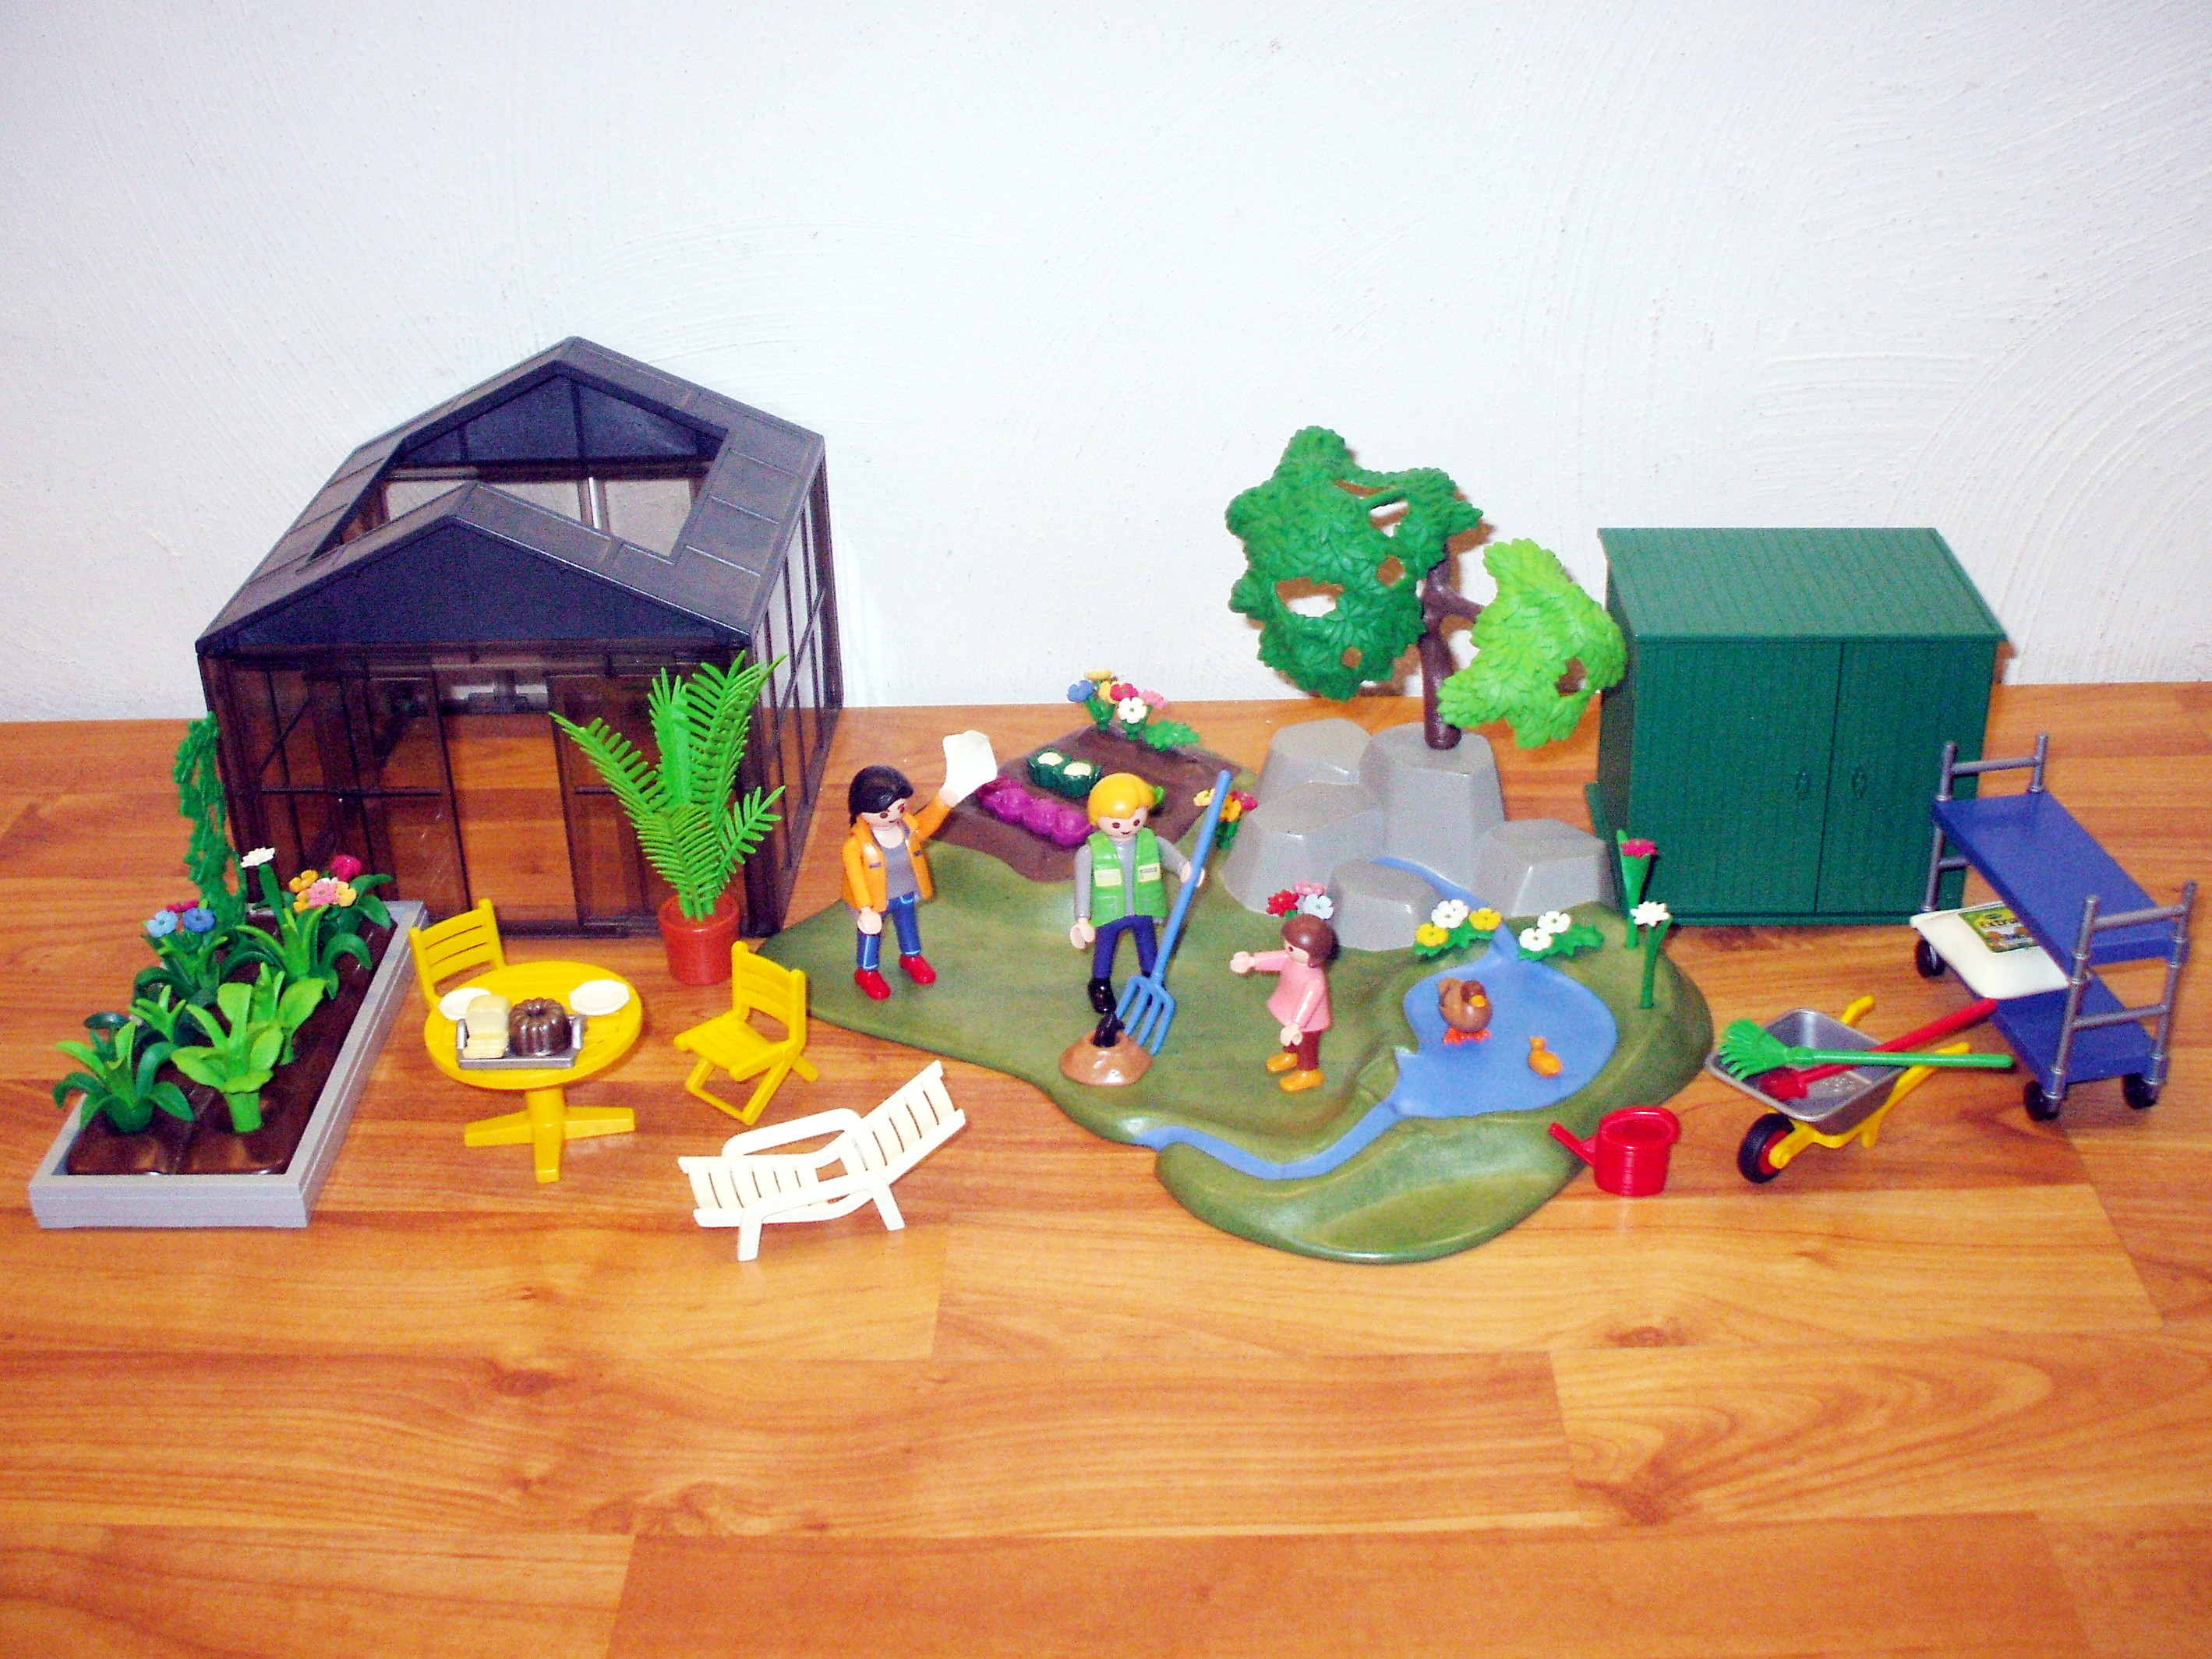 playmobil garten mit gew chshaus beet ger teschuppen ebay. Black Bedroom Furniture Sets. Home Design Ideas